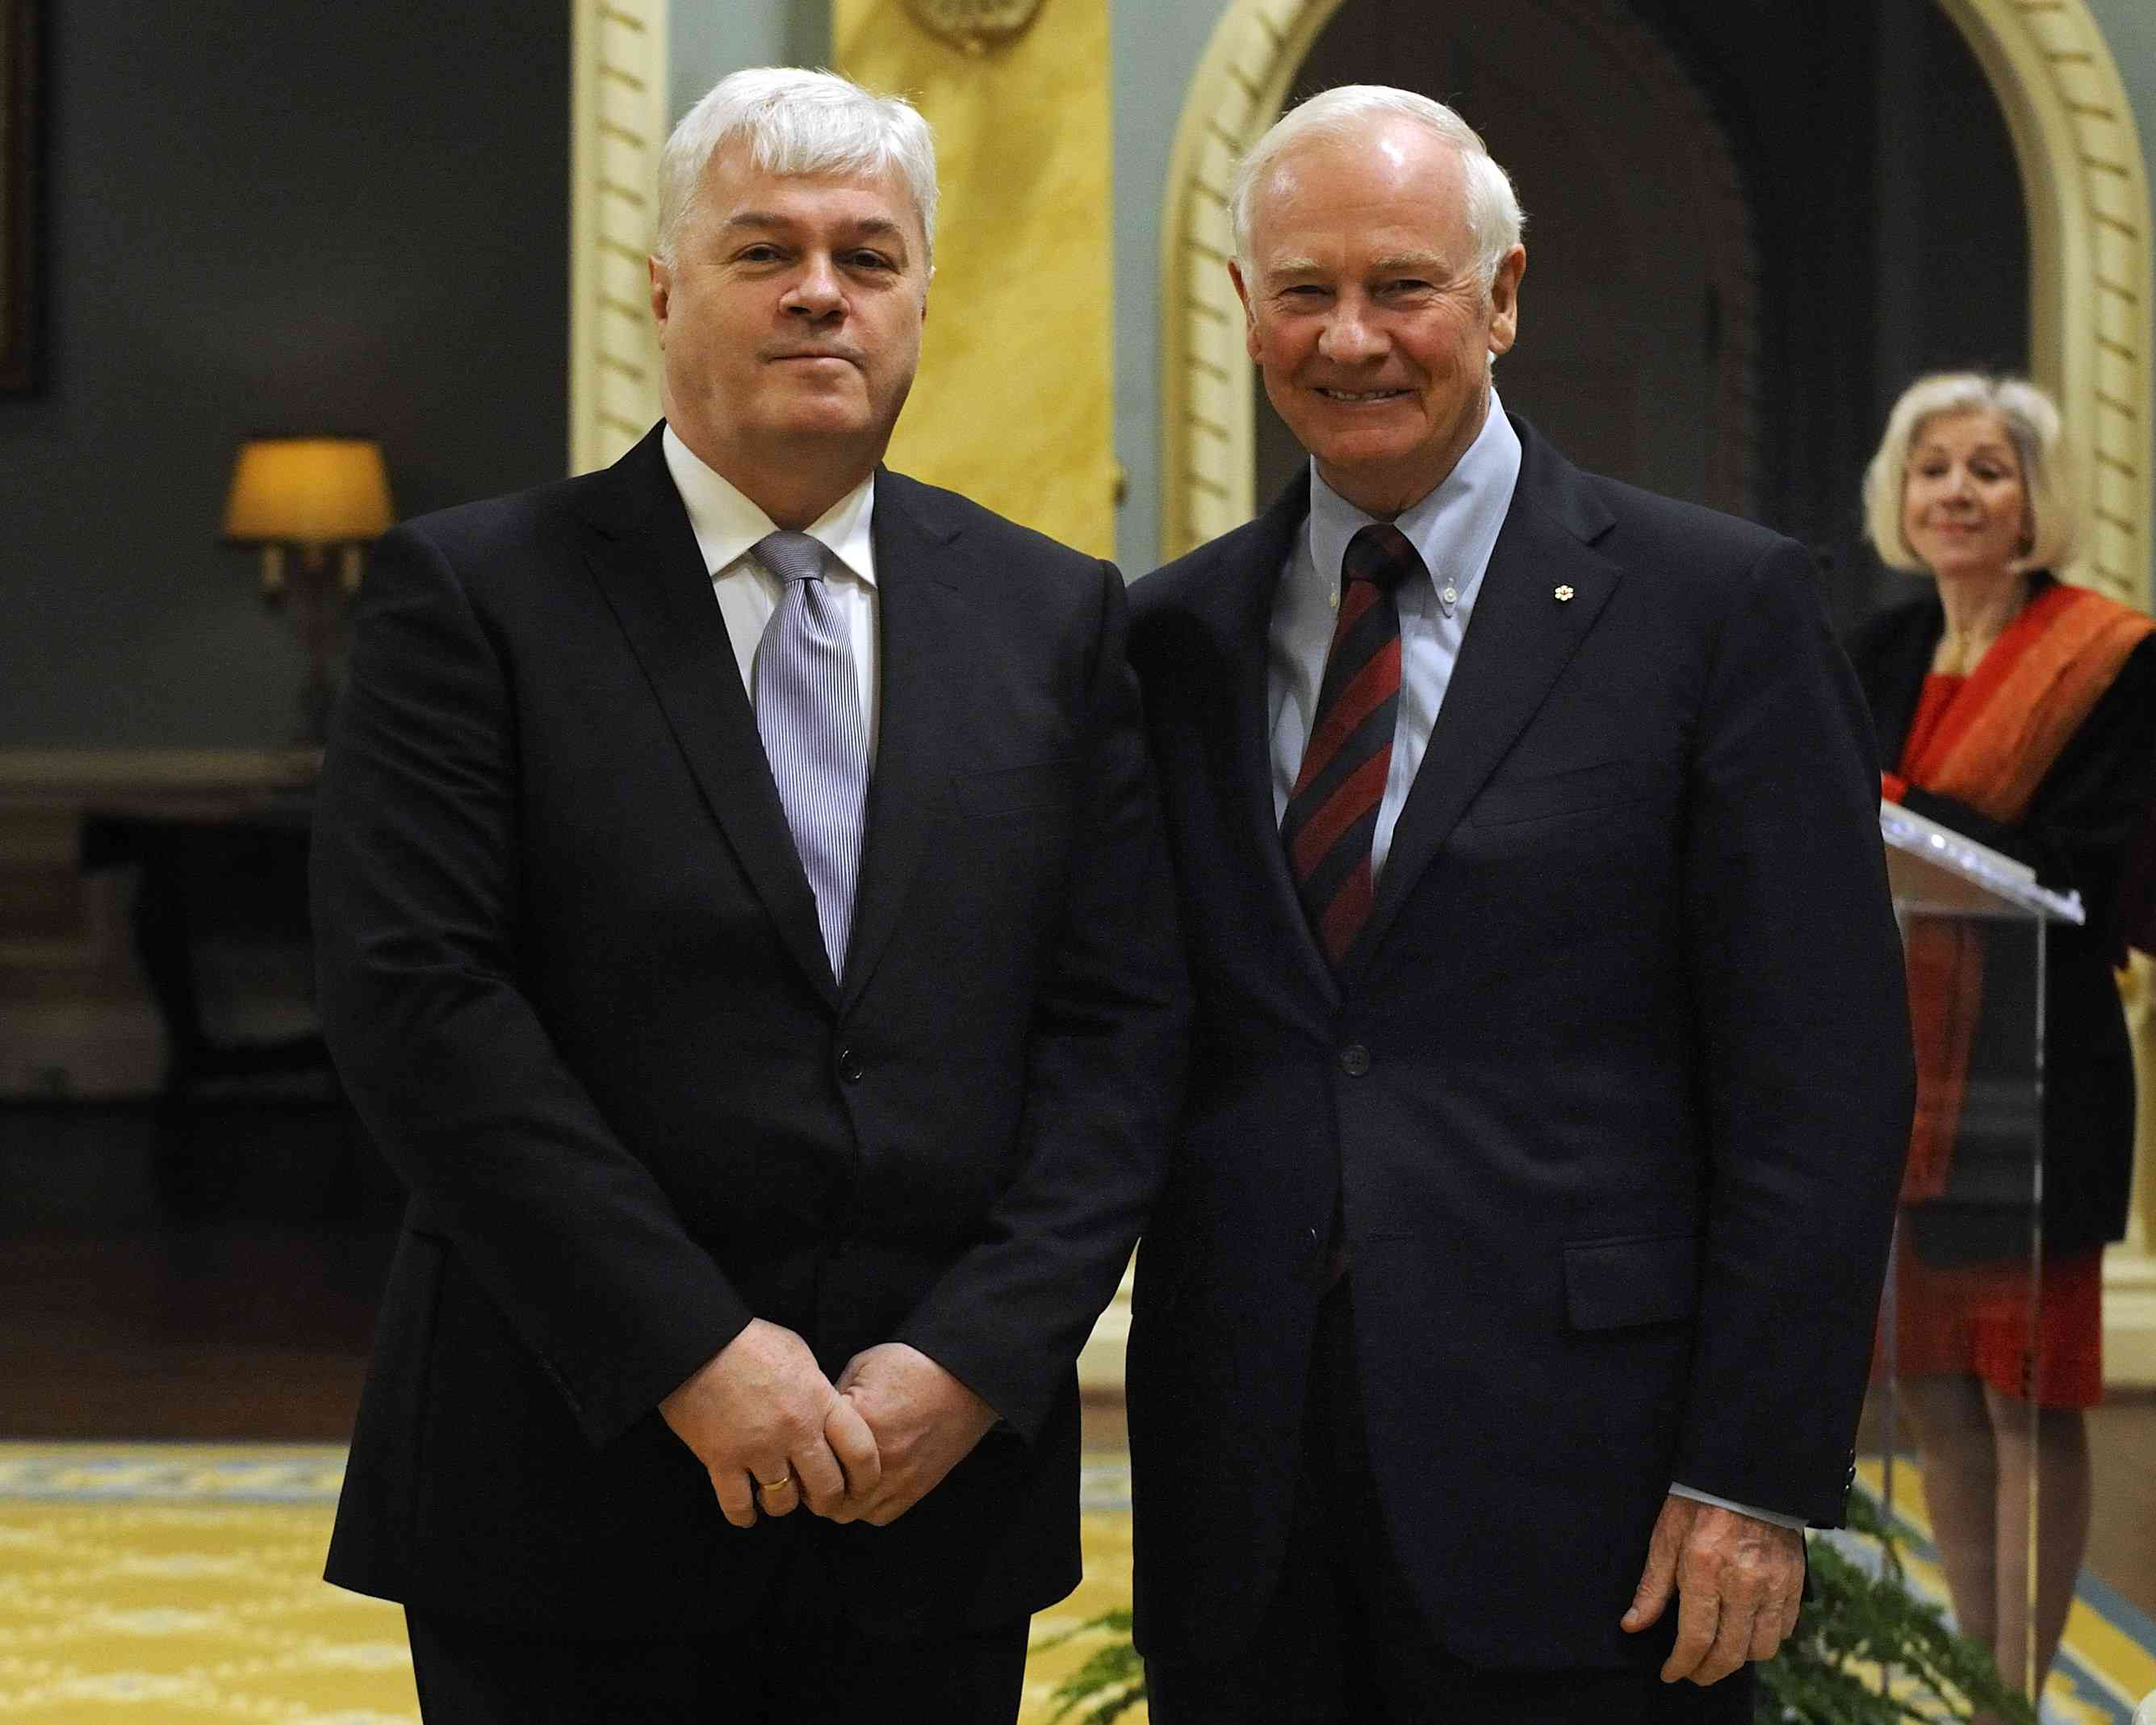 A presentation of credentials from four new heads of mission took place on March 8, 2012, at Rideau Hall. On this occasion, the Governor General first received the credentials of His Excellency Thordur Aegir Oskarsson, Ambassador of the Republic of Iceland.